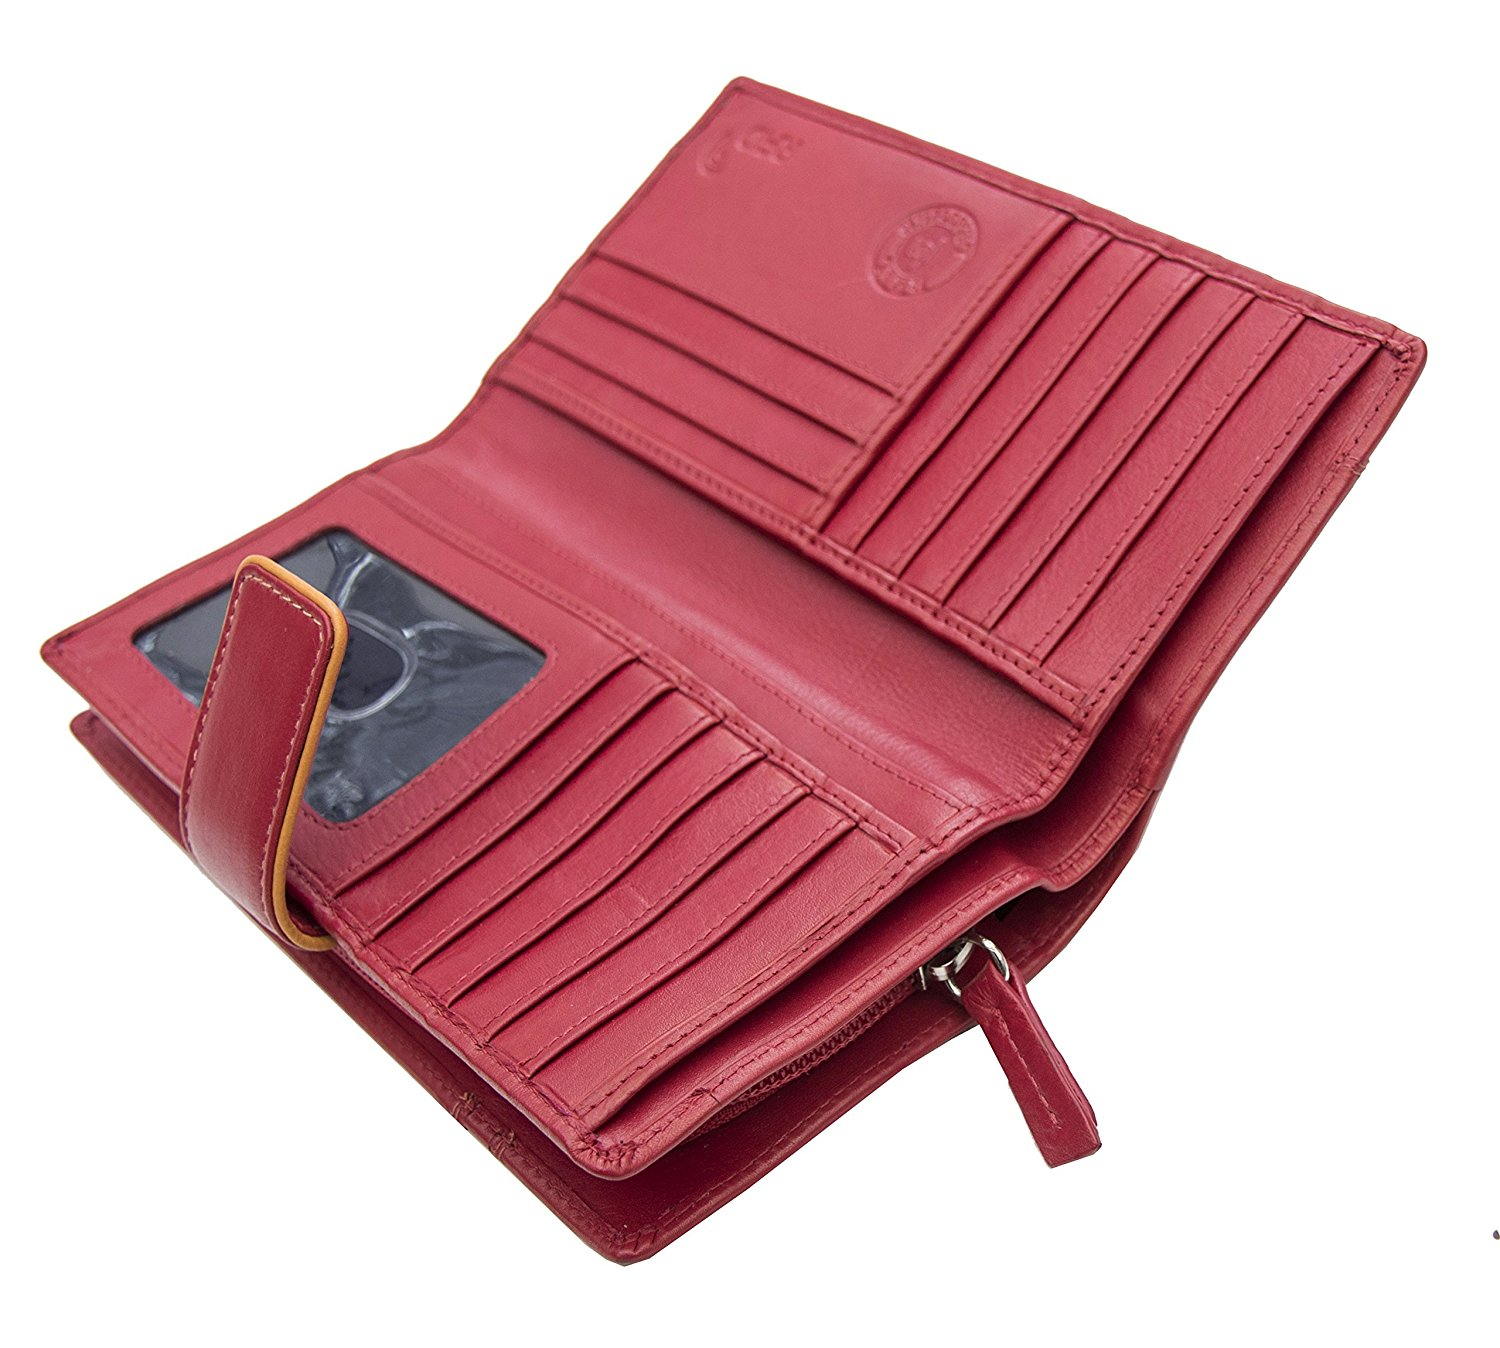 Femmes-Extra-Large-en-Cuir-Veritable-RFID-Bloquant-Organisateur-Clutch-Wallet-purse miniature 23